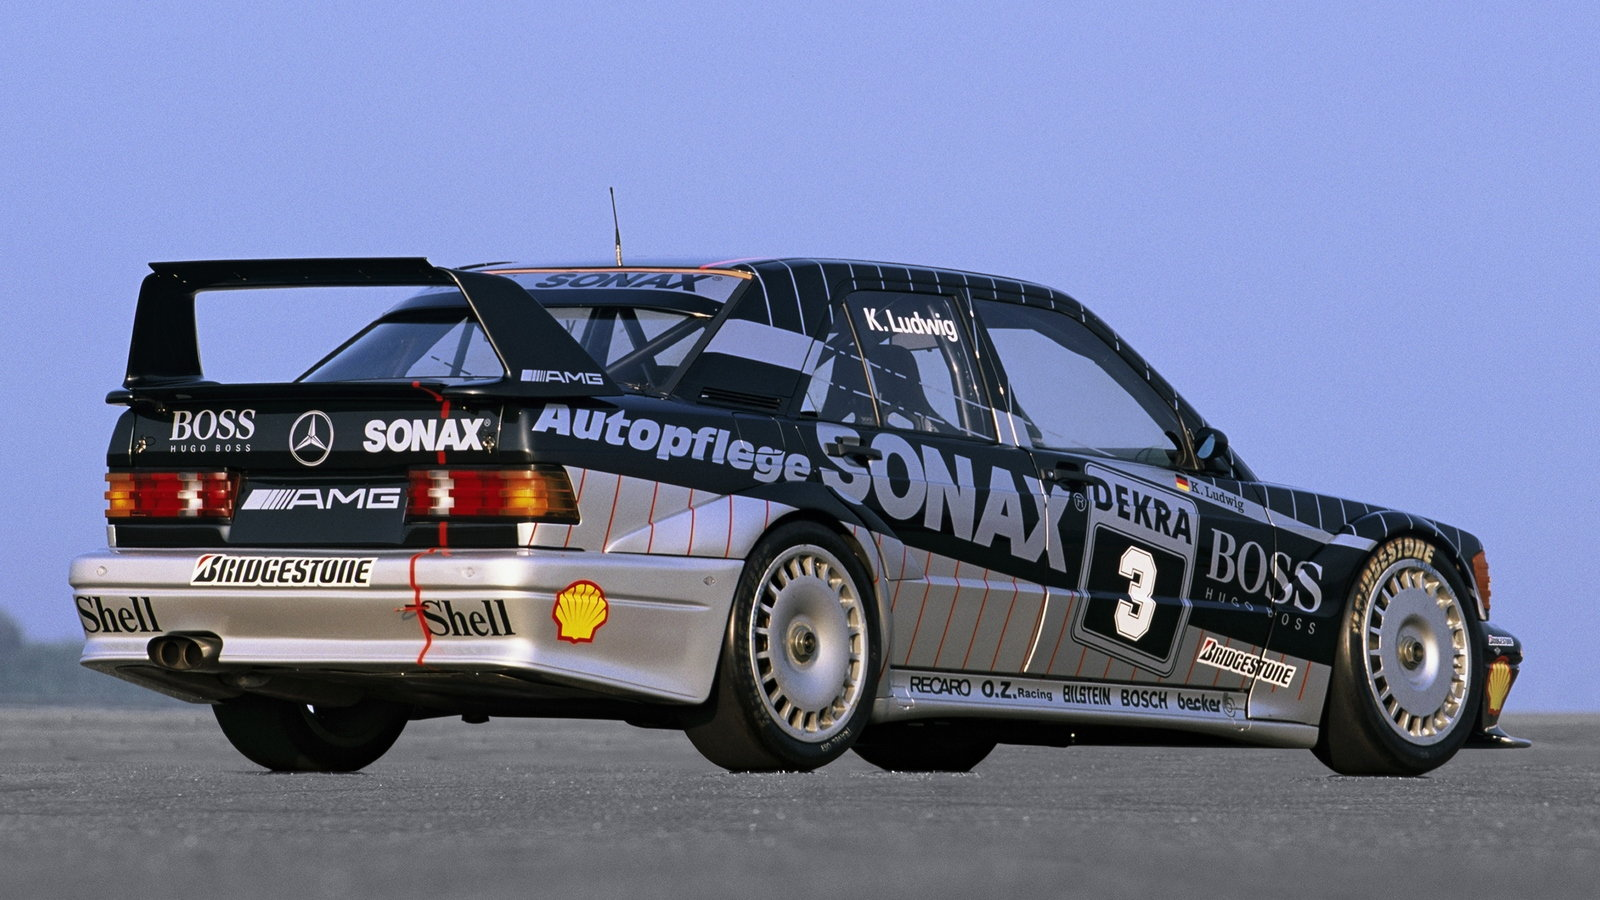 Mercedes 190 E Cosworth is Why the M3 Exists